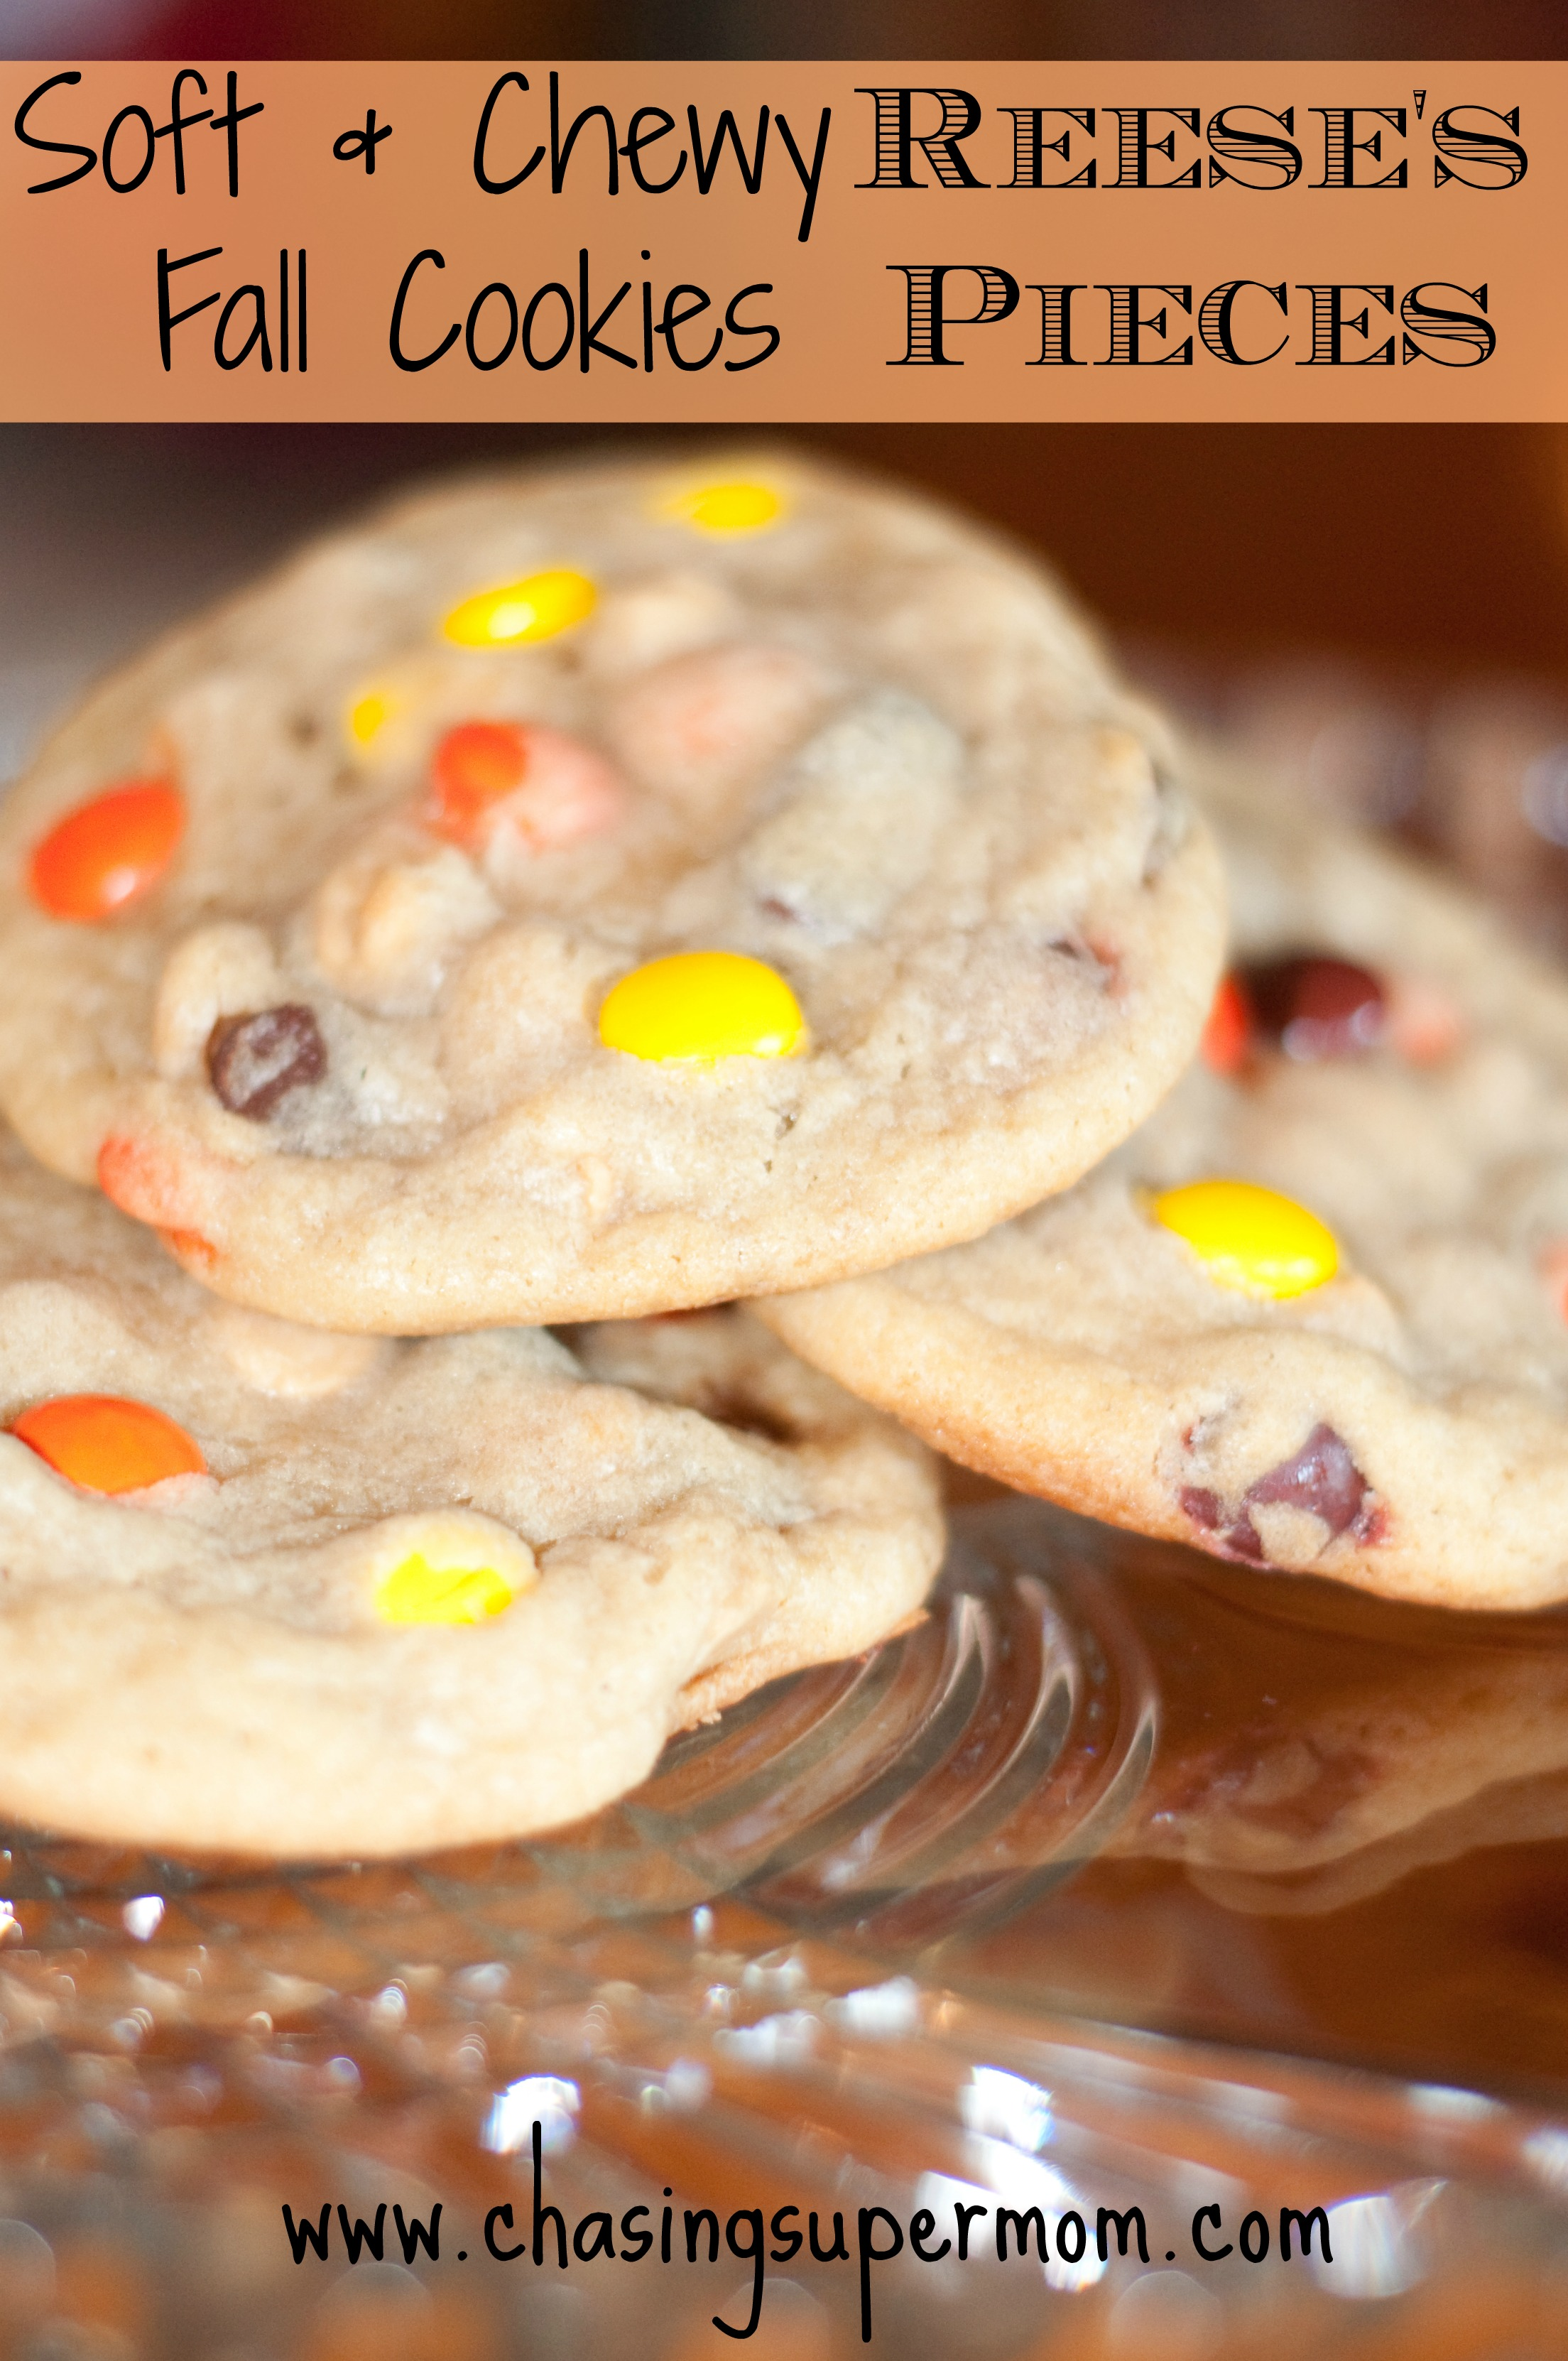 Soft Amp Chewy Reese S Pieces Fall Cookies